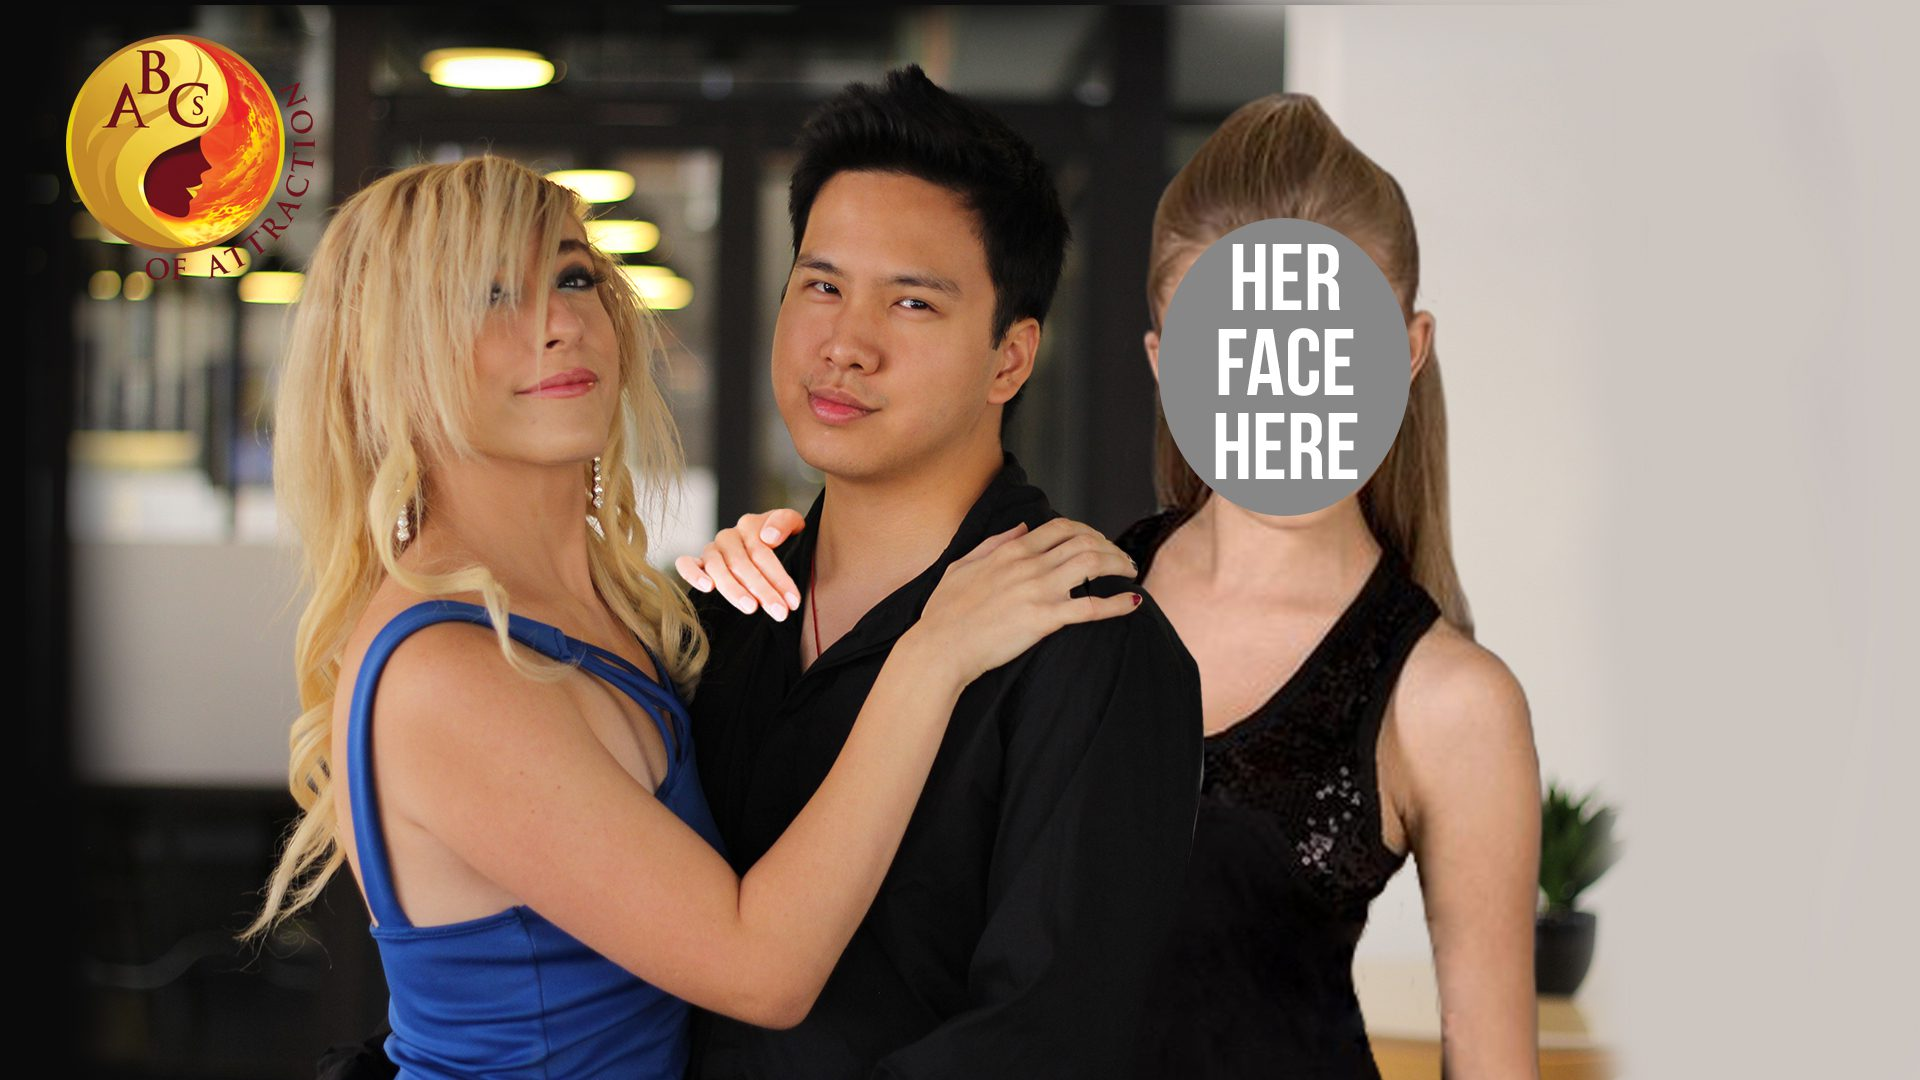 Women confess to threesome